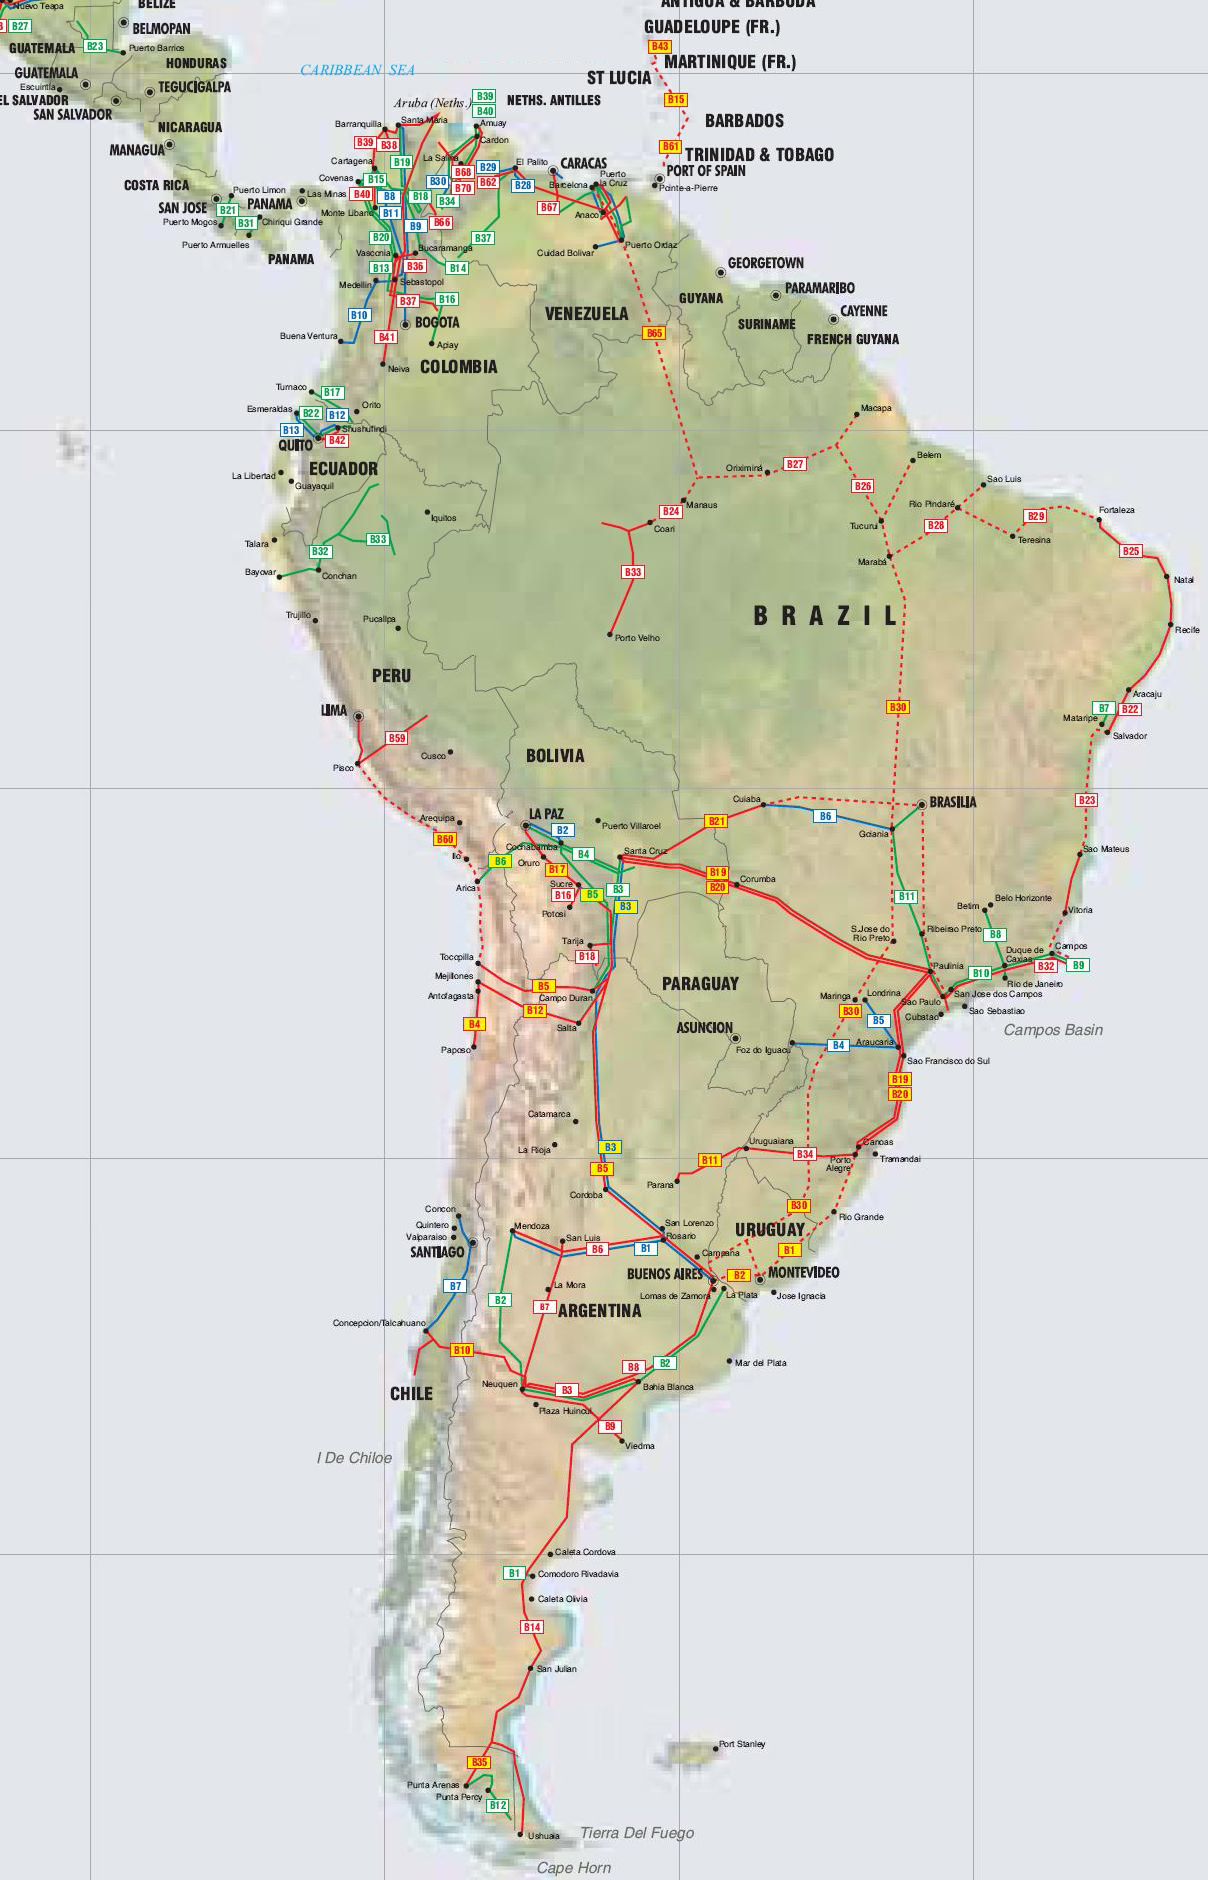 Central America Caribbean And South America Pipelines Map Crude - Oil pipeline map north america